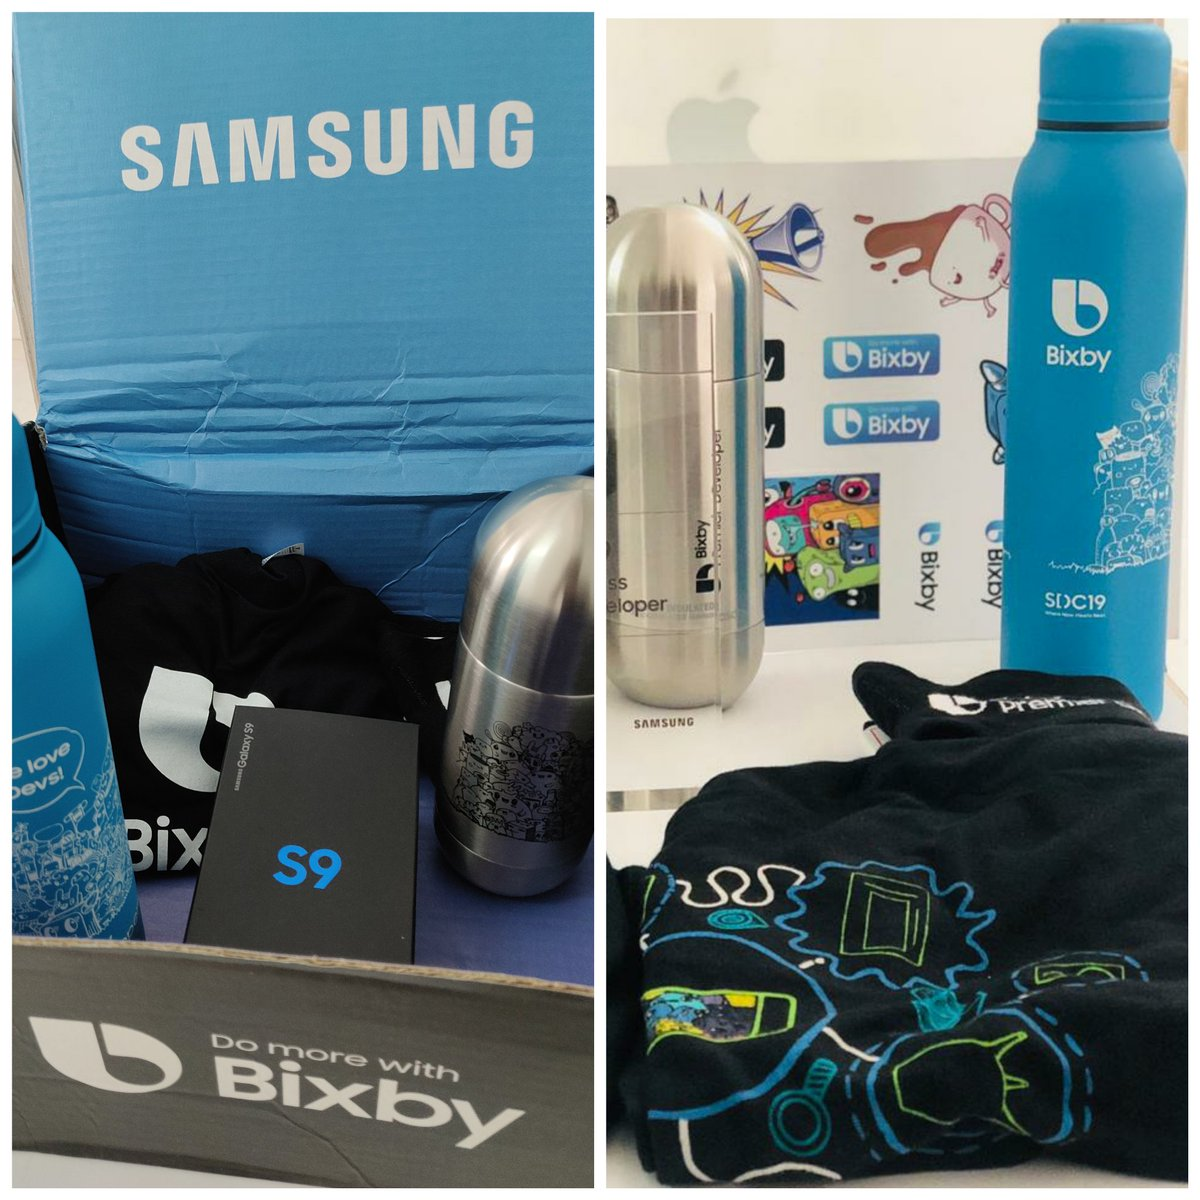 Got the swag box from Bixby🤩 Try saying find recipes to your Bixby😋  Thanks @Justcr1sp @PeteHaas @Mirrorsh .  @BixbyDevelopers @SamsungMobile @bixby #swagbox #bixby #bixbydevelopers #Samsung https://t.co/7MbiTiFCba